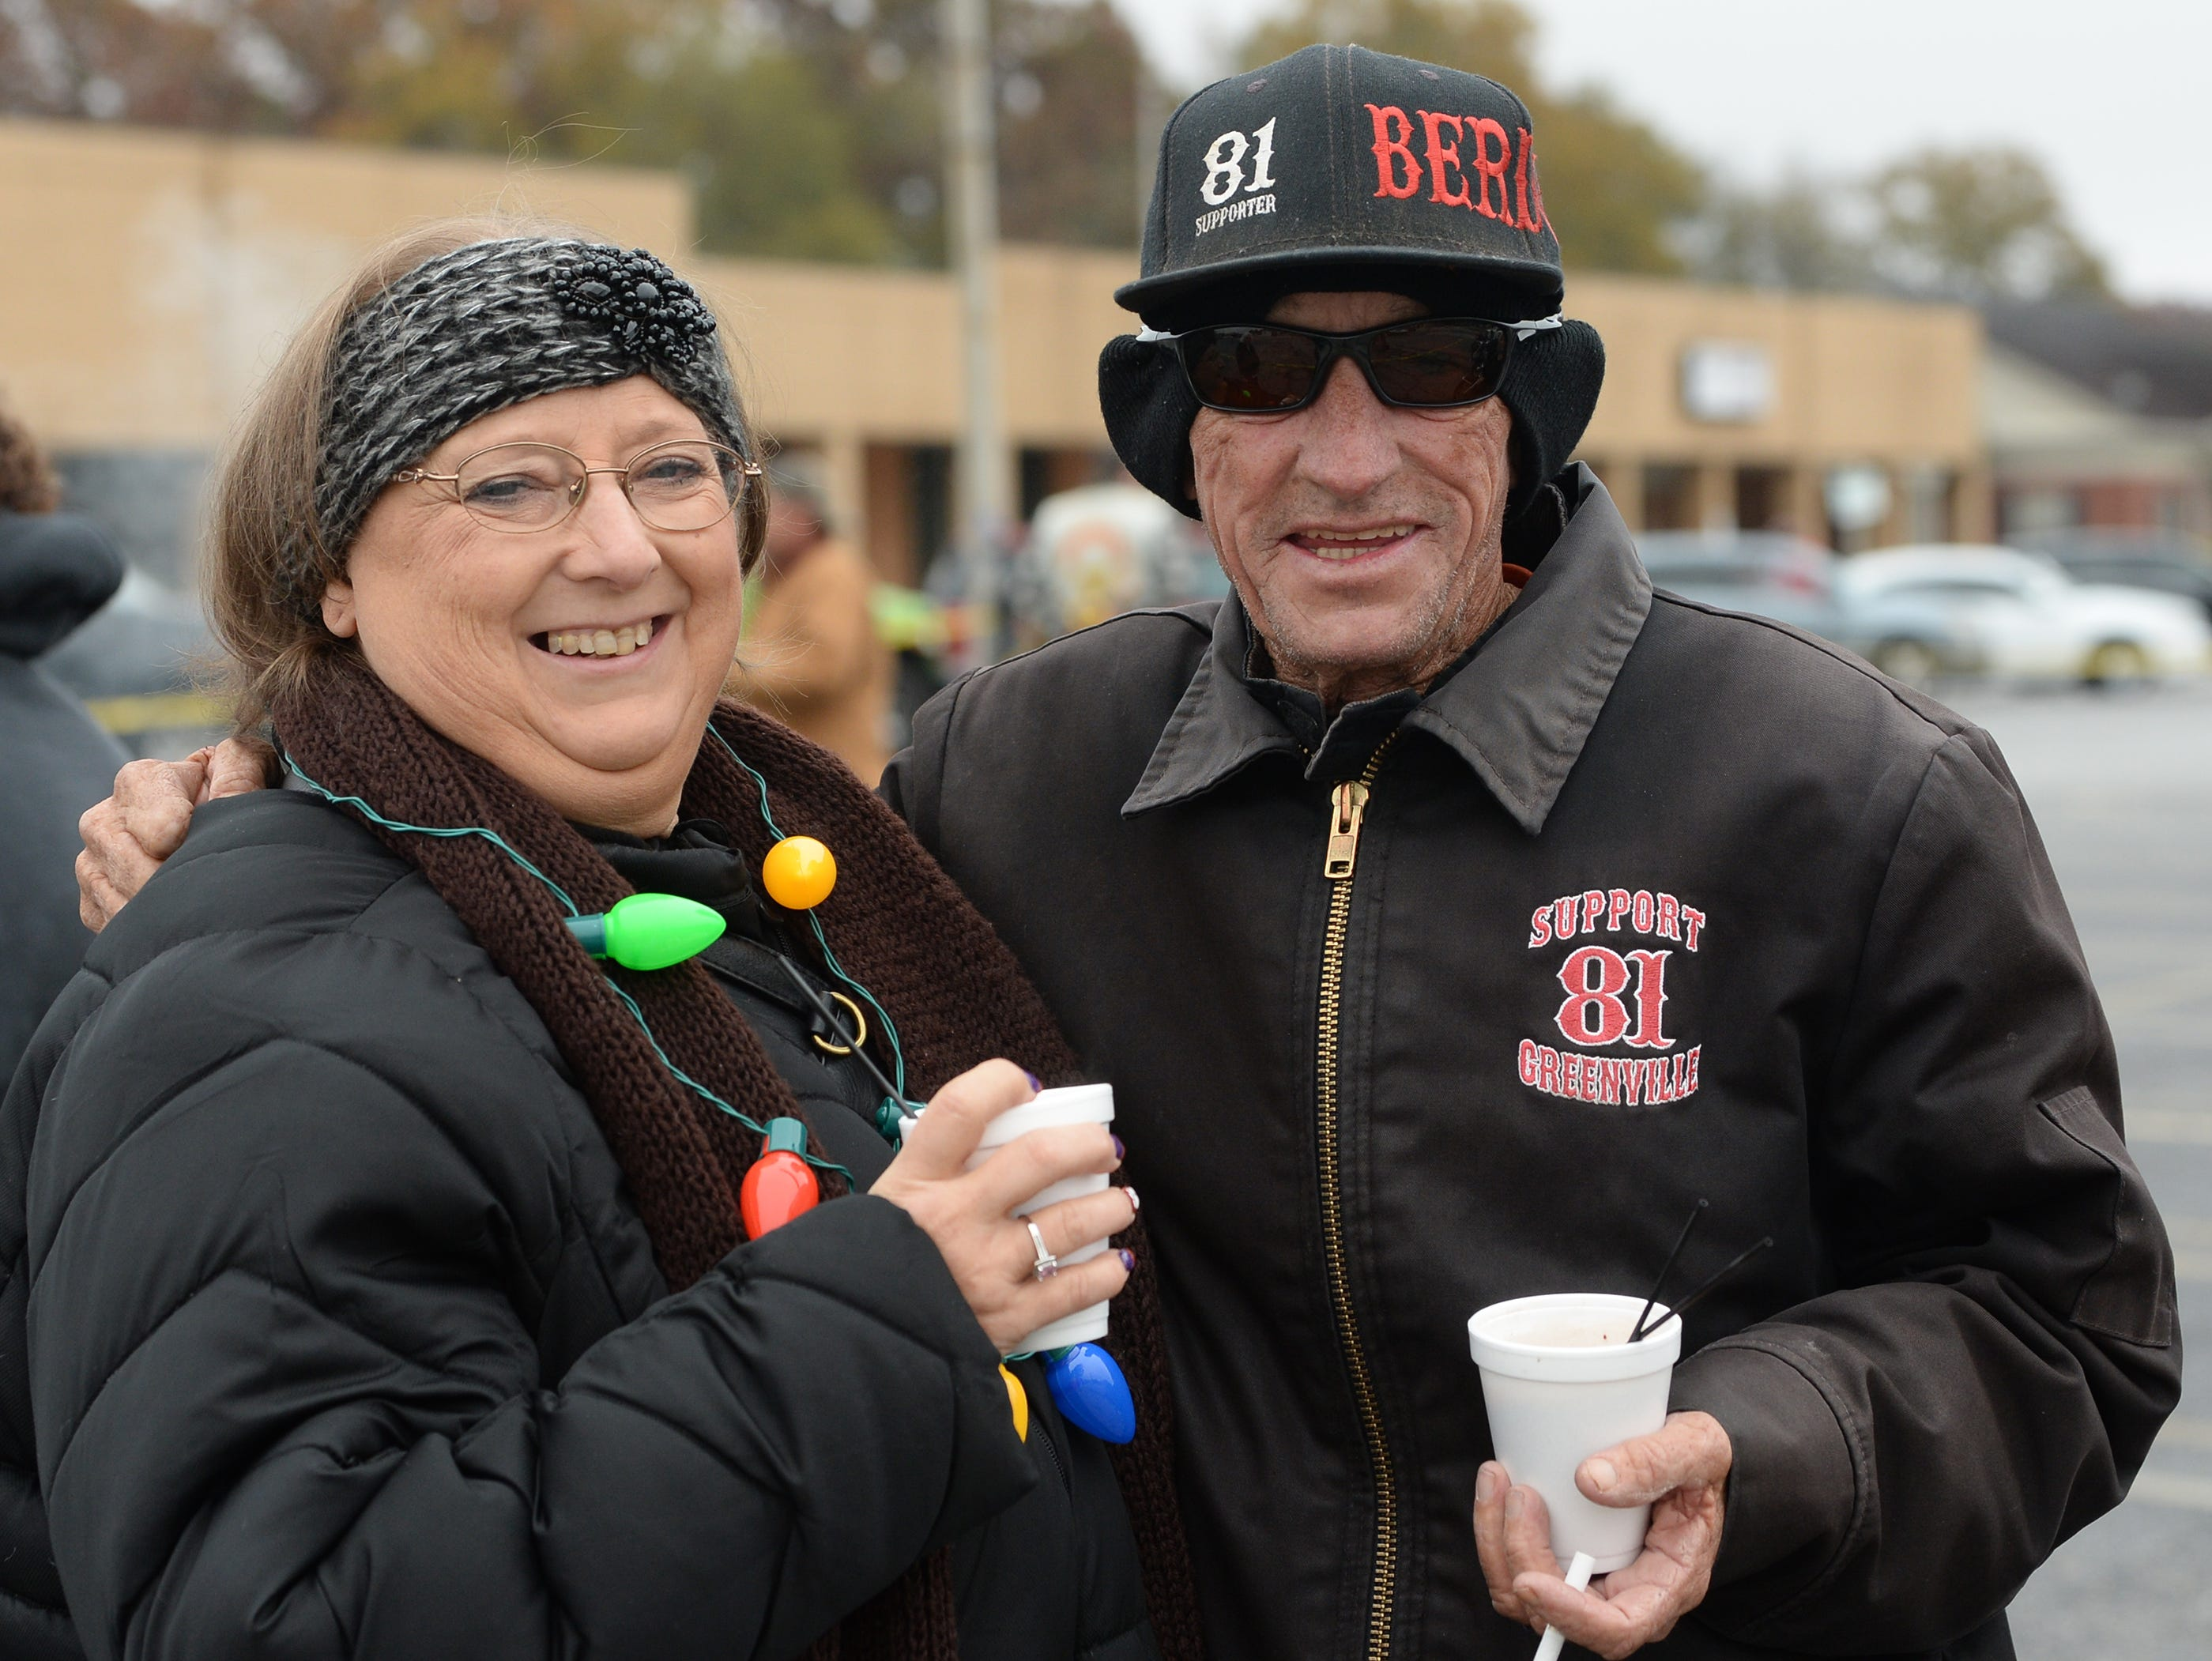 """Stacy Simmons, left, and Robert """"Squirrel"""" Simmons of Central, before the 38th Jack Hurley Toy Parade in Anderson on Sunday, November 25, 2018. The parade started at White Jones Hardware parking lot in the Watson Village, followed along Main Street to the Civic Center of Anderson where toys were donated to Anderson Cares and Shares. Organizer Robert """"Little Man"""" Fagg said about 350 families are helped out with toys for Christmas."""